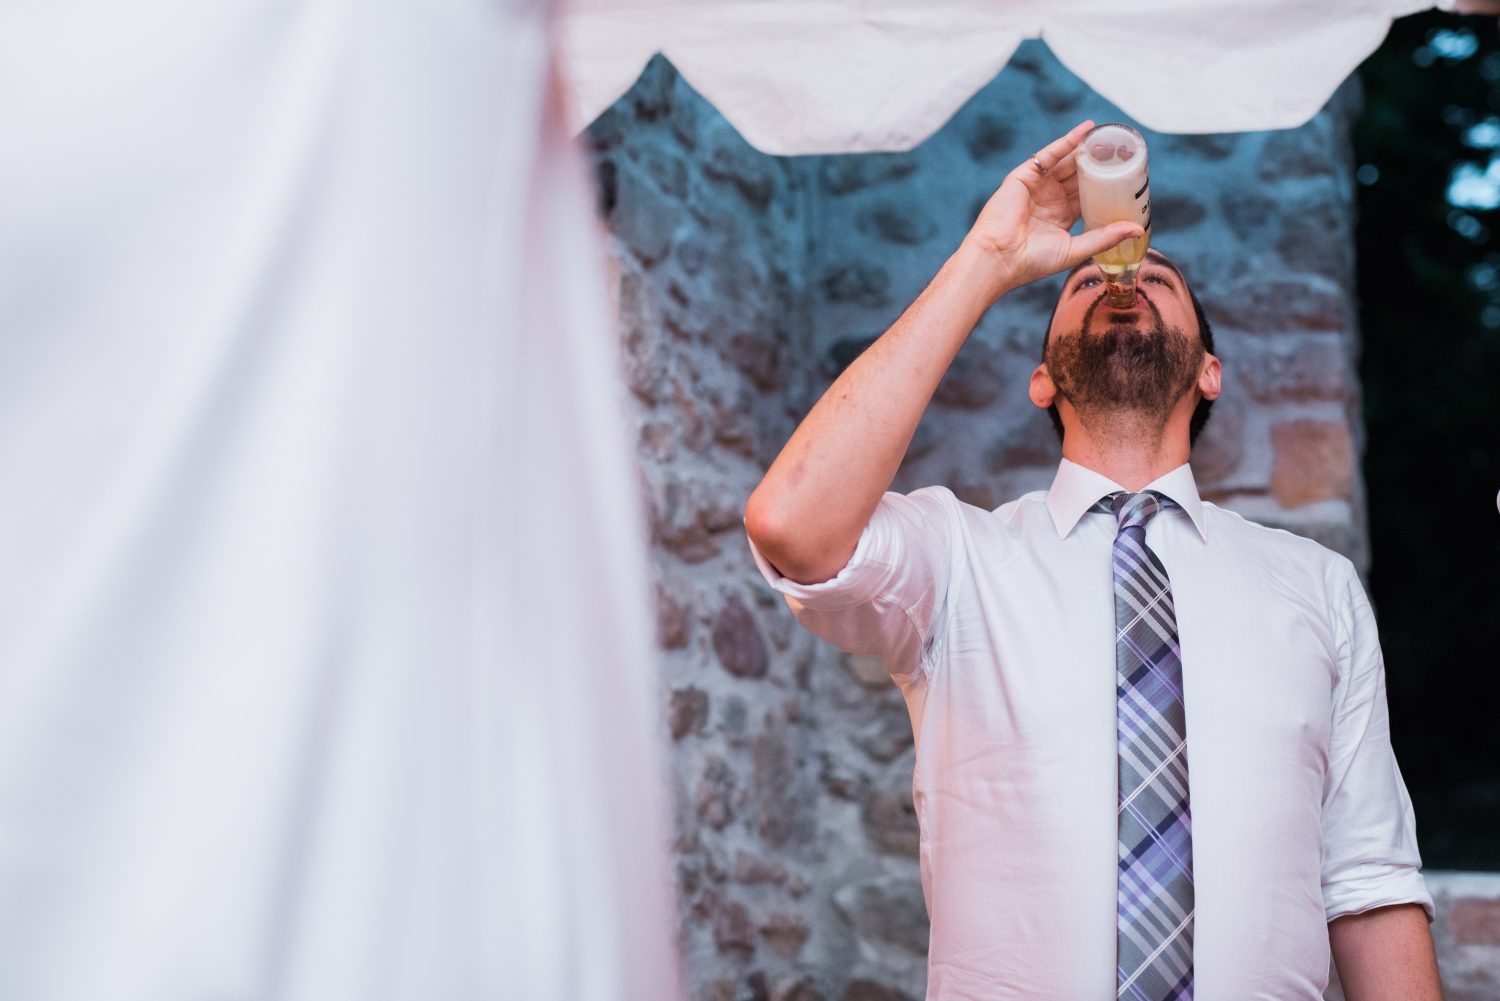 Groom chugs a beer after losing a game at Alton Mill wedding